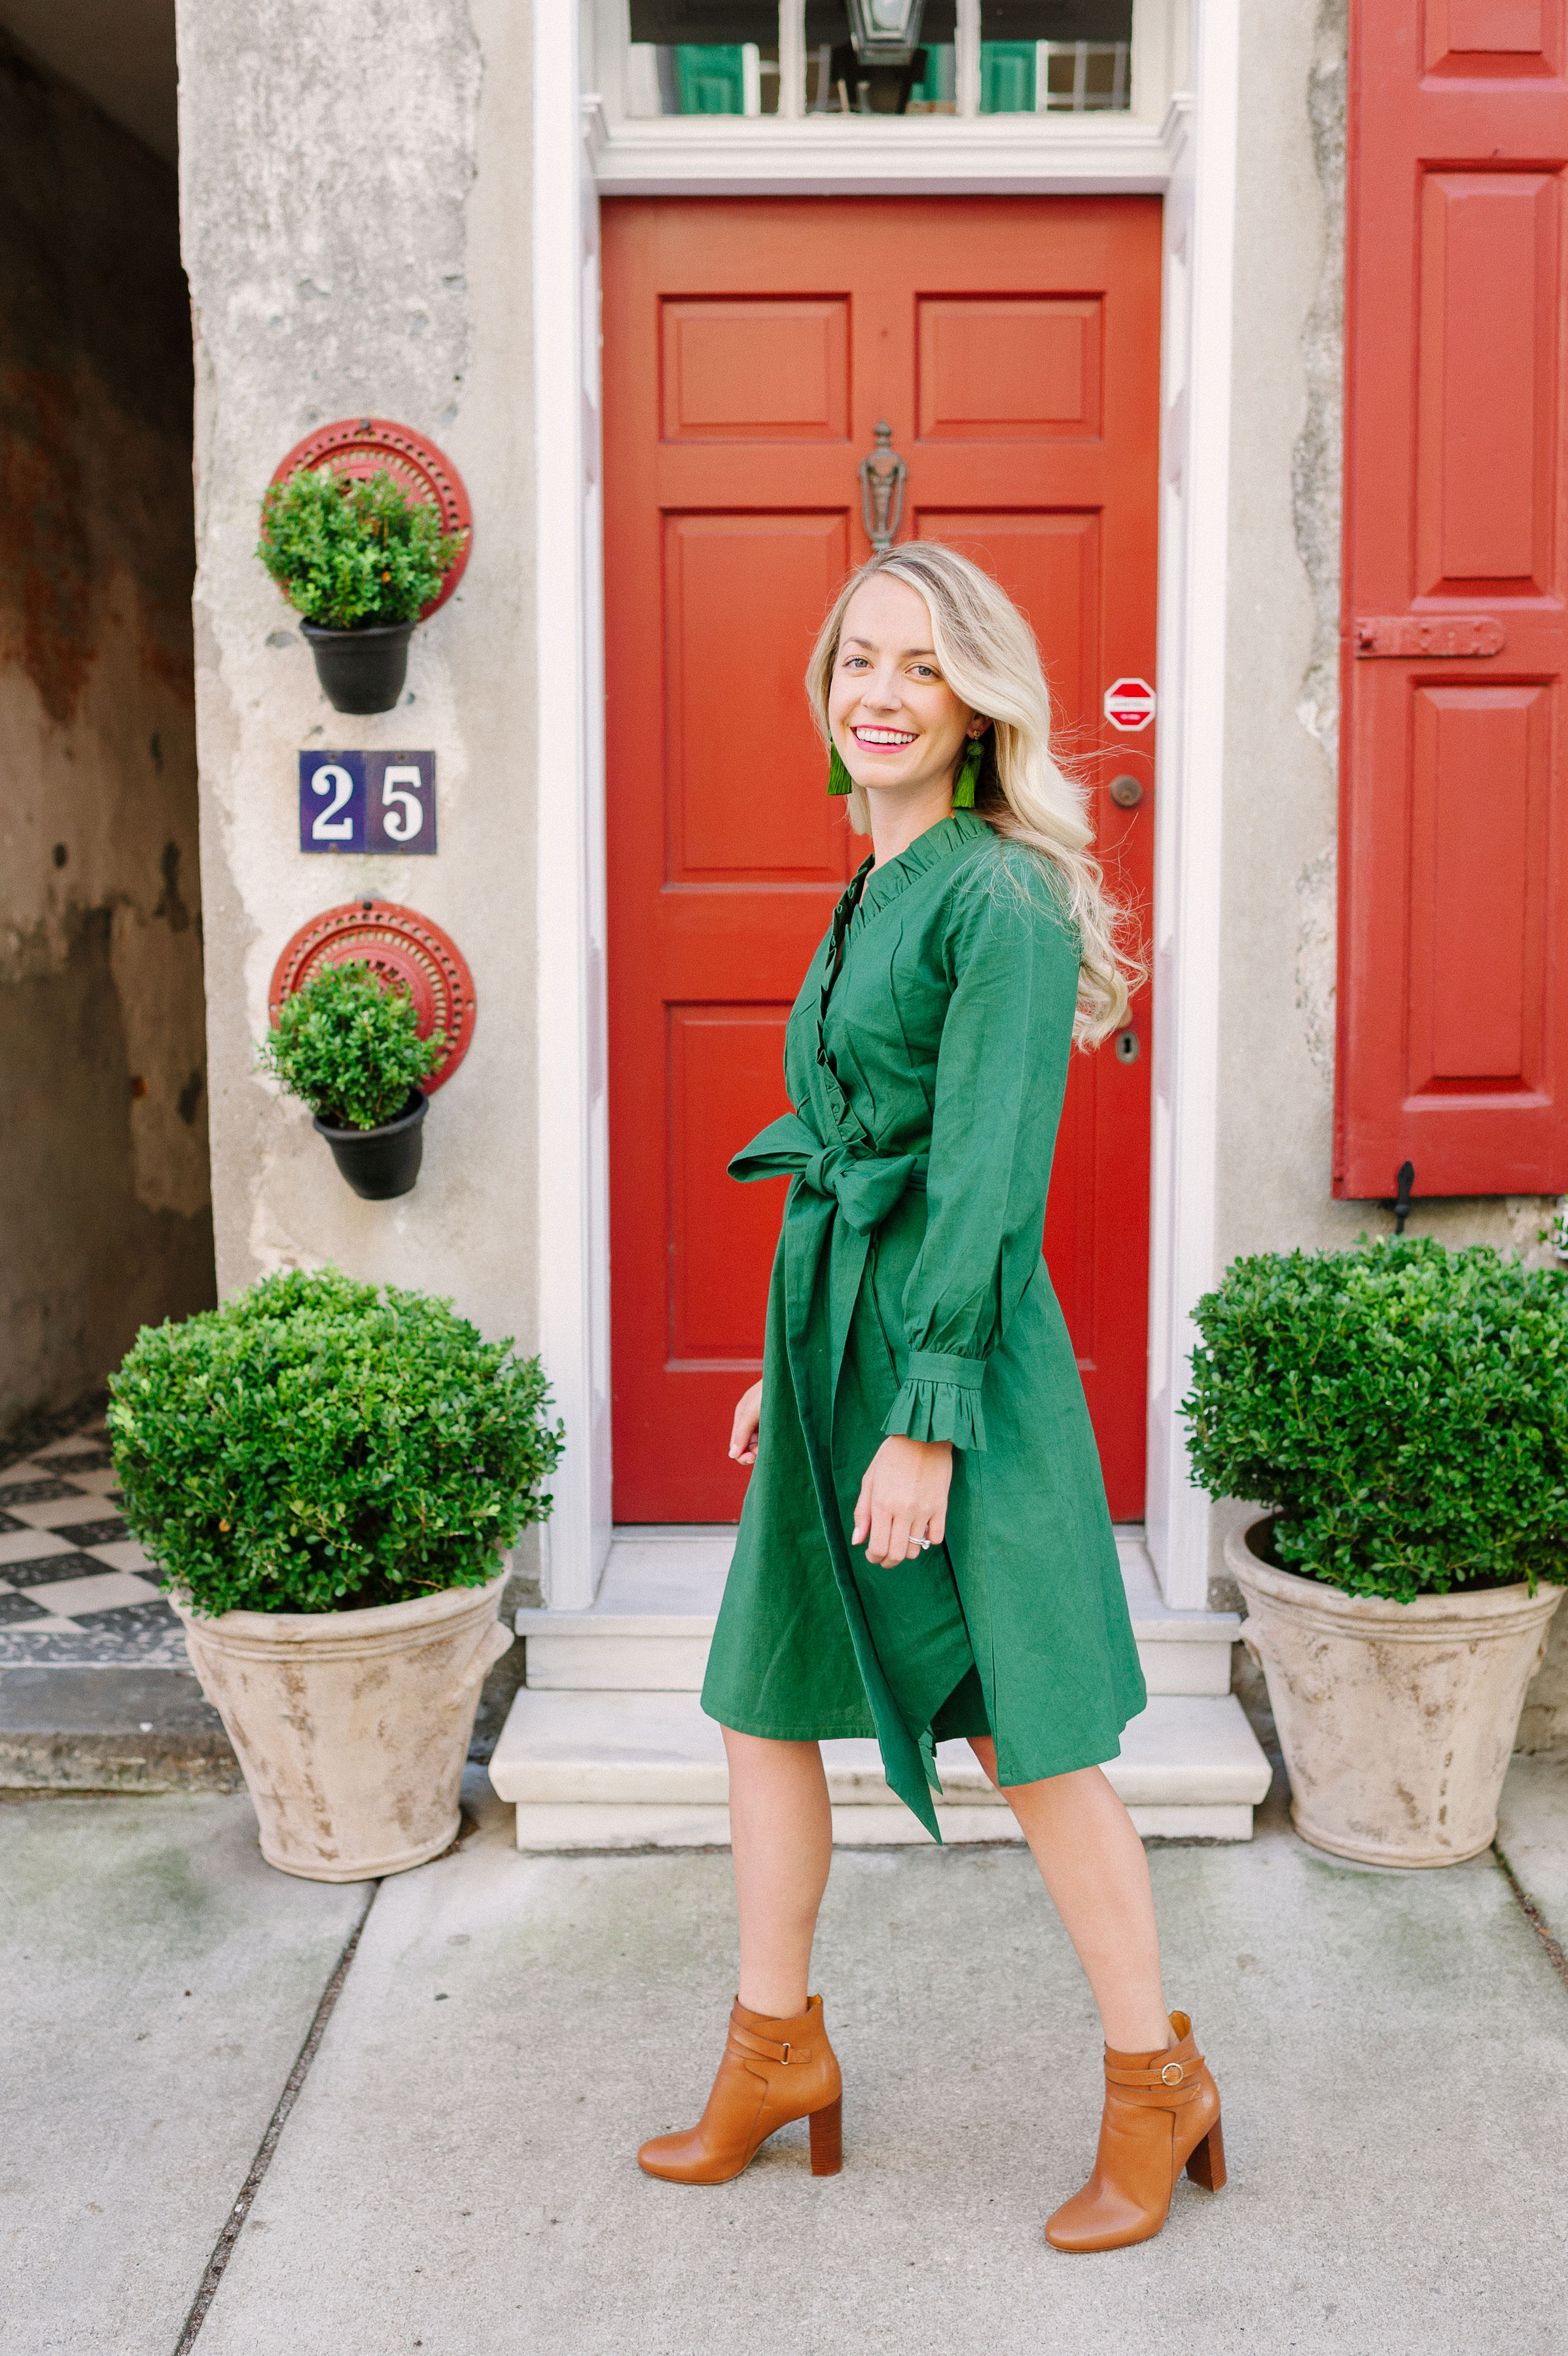 The best party dress of the season: The Jillian Dress + must-have a knee-length ruffle wrap dress with ruffle sleeves and a sash at the waistline | Rhyme & Reason